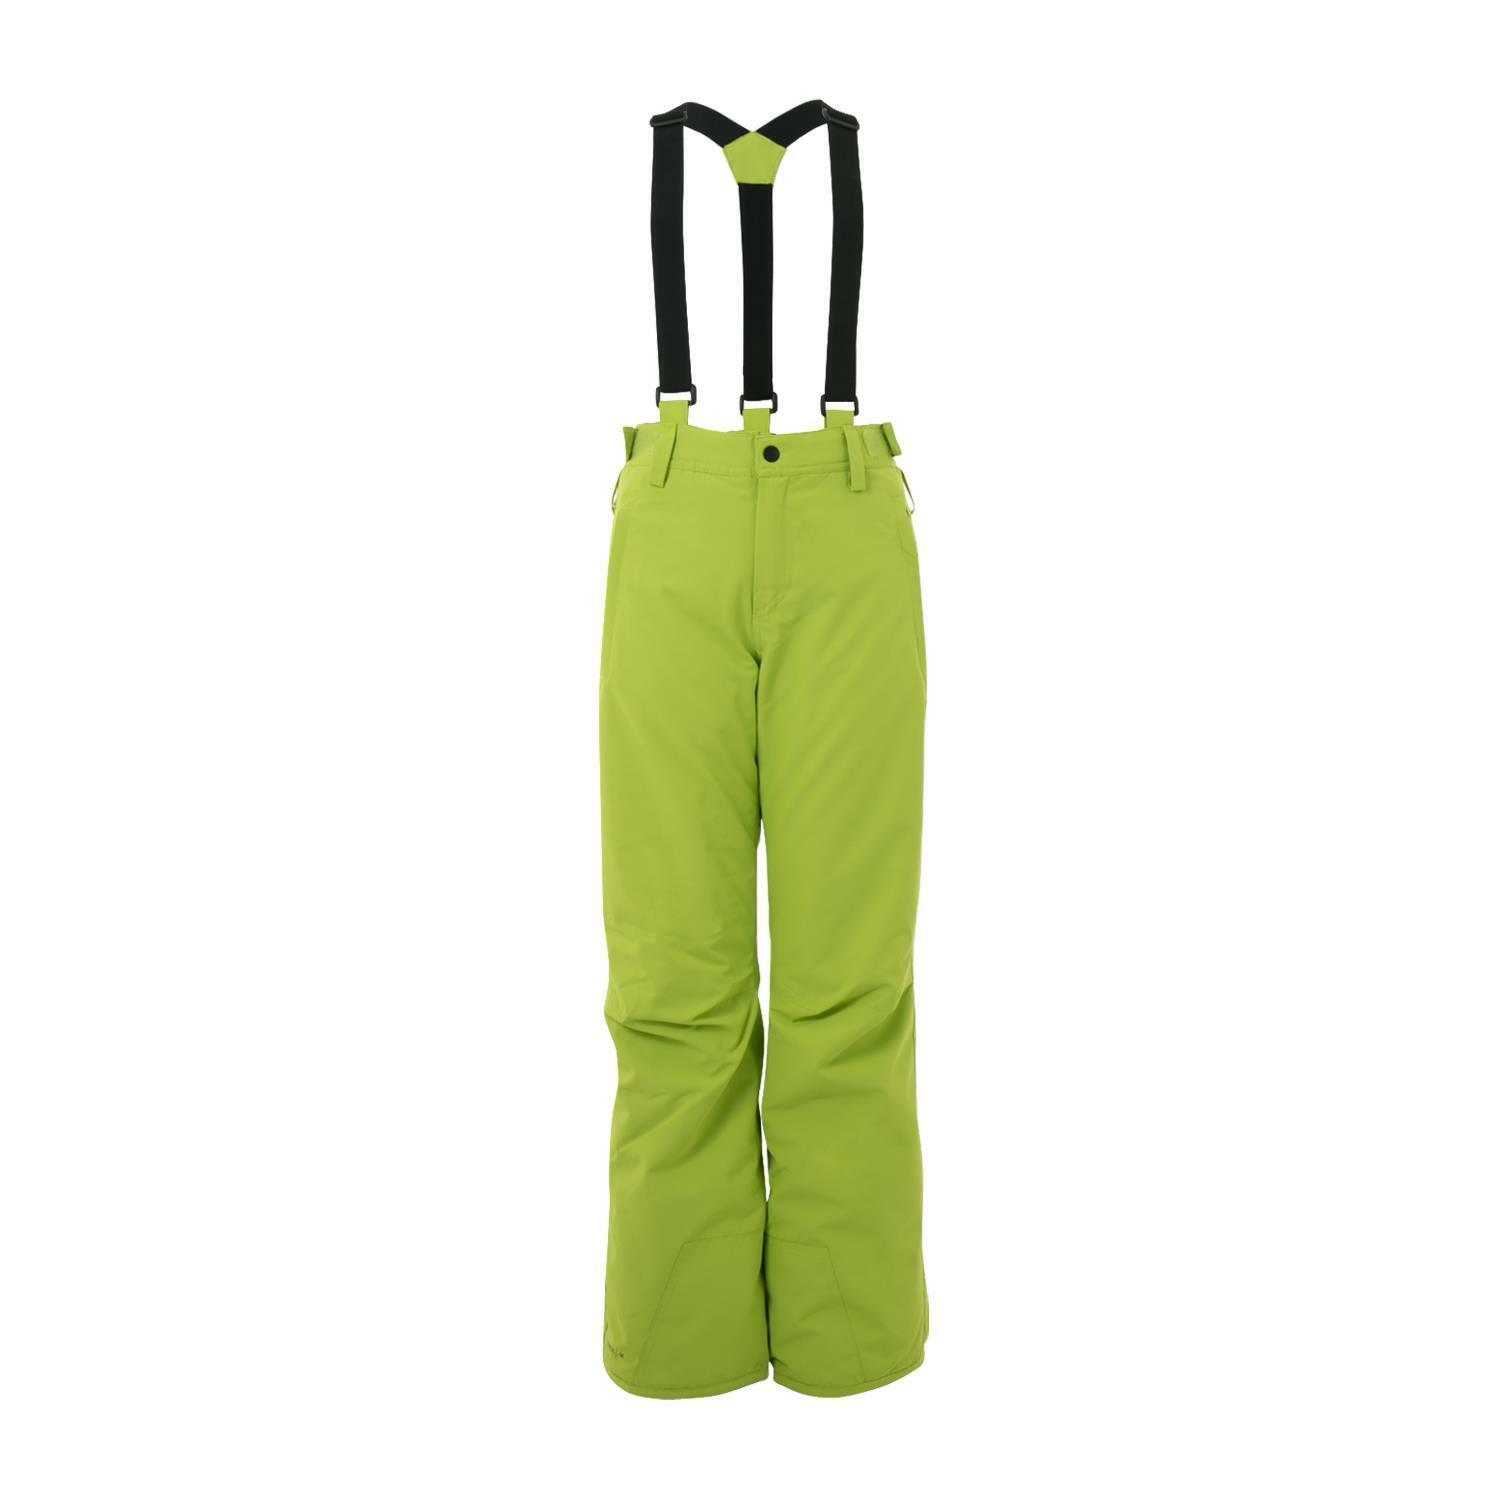 Brunotti Ski Trousers Snowboard Trousers  Footstrap Jr W1819  store sale outlet